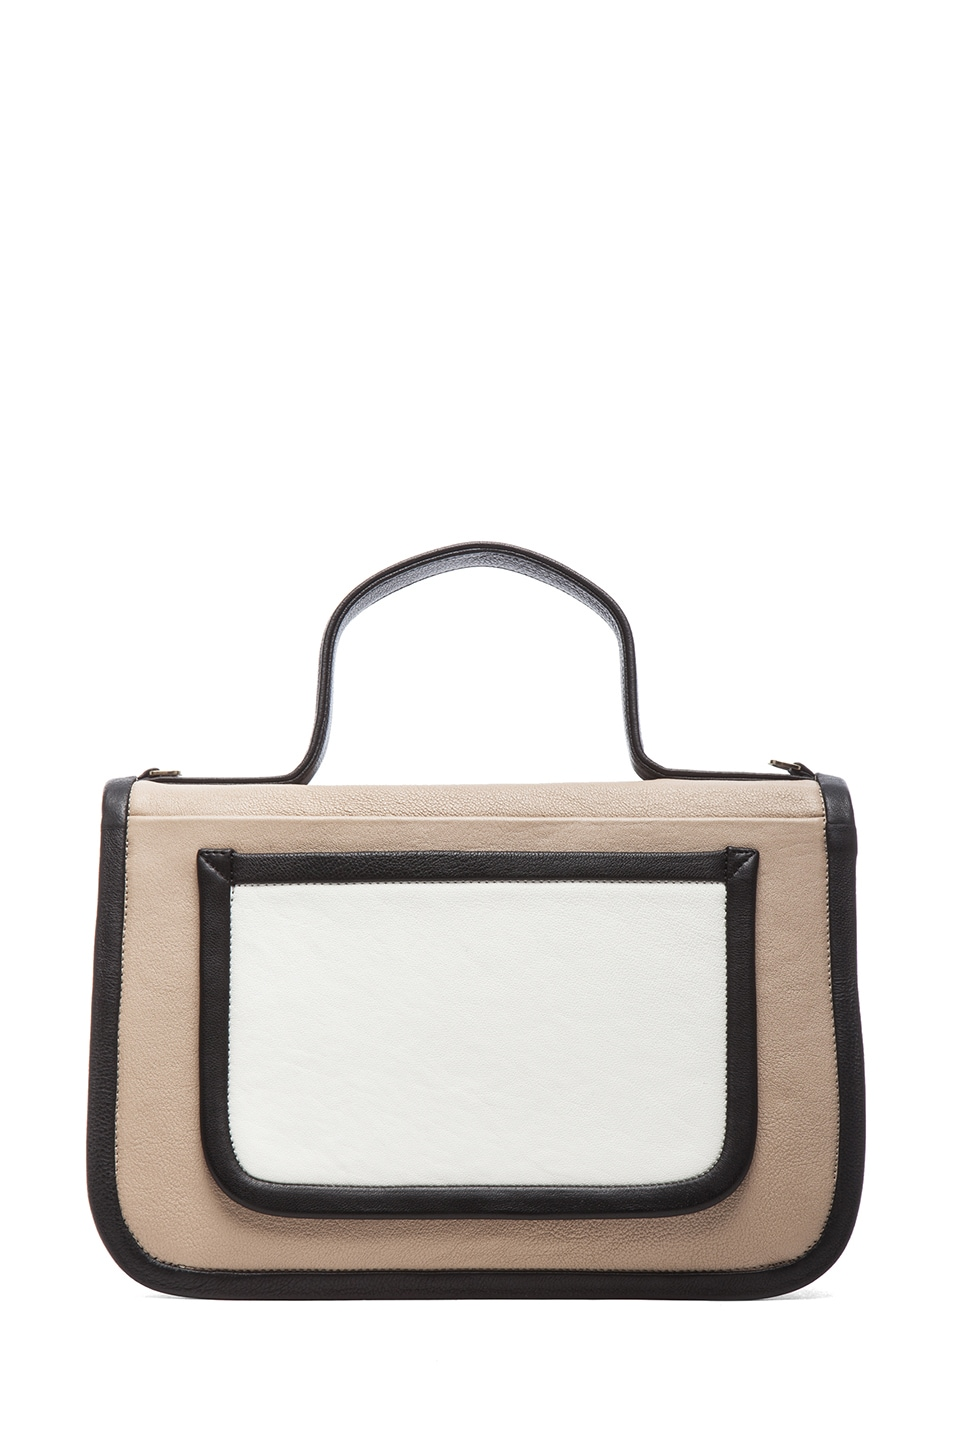 Image 2 of Pierre Hardy Large Bag in Multi Beige